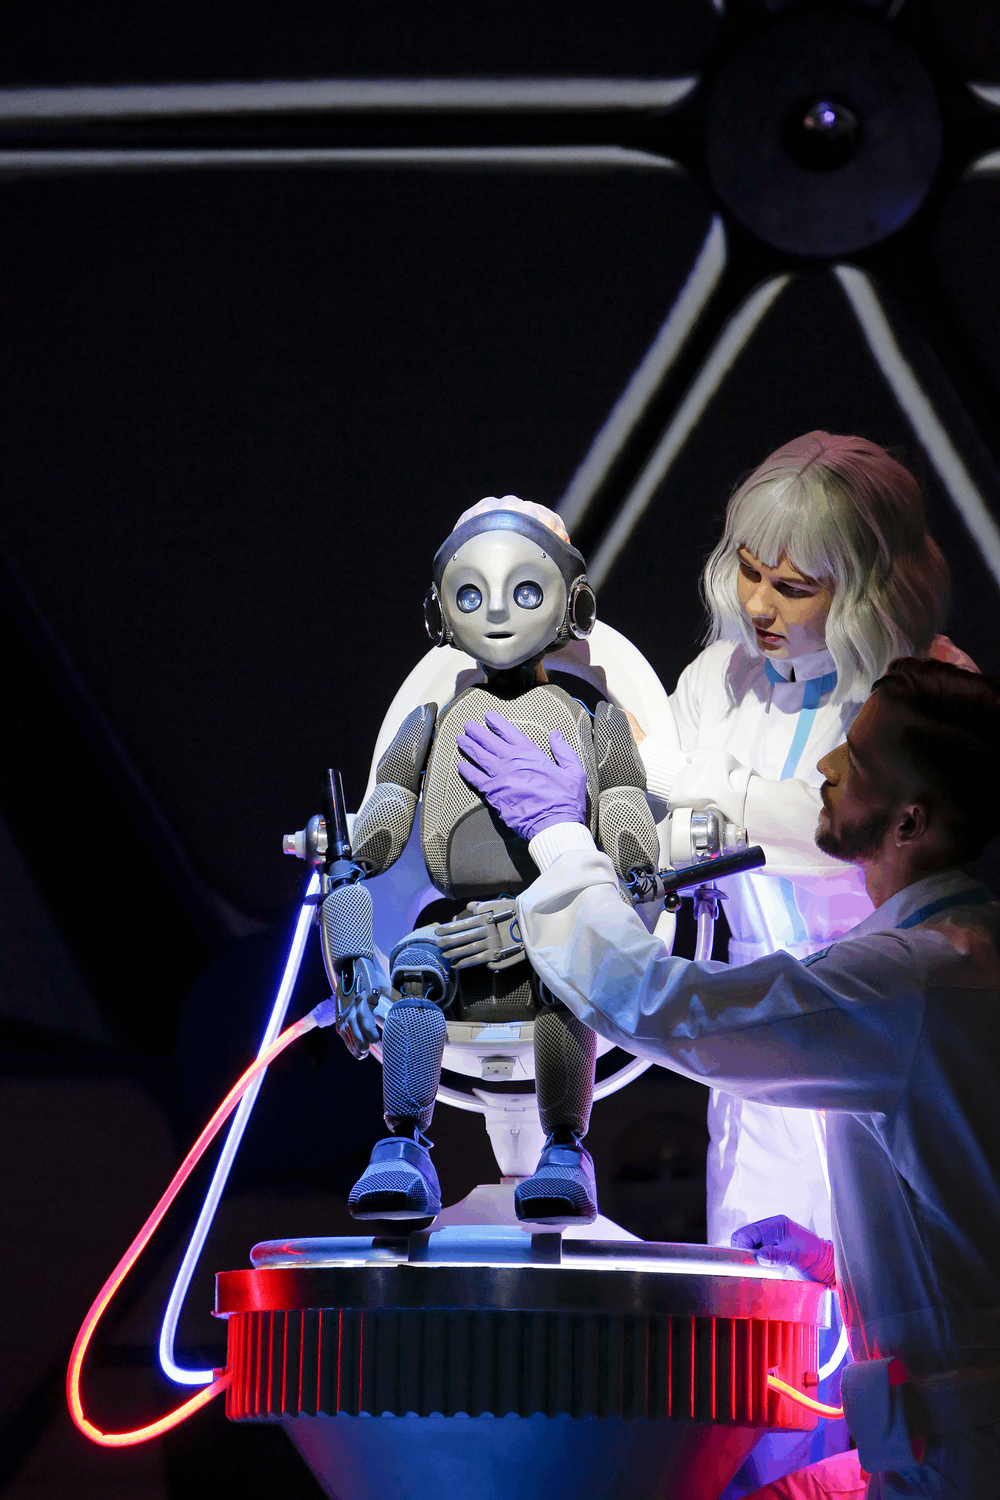 Robot Boy sitting in a chair with wires attached to him as 2 technicians check that he is OK